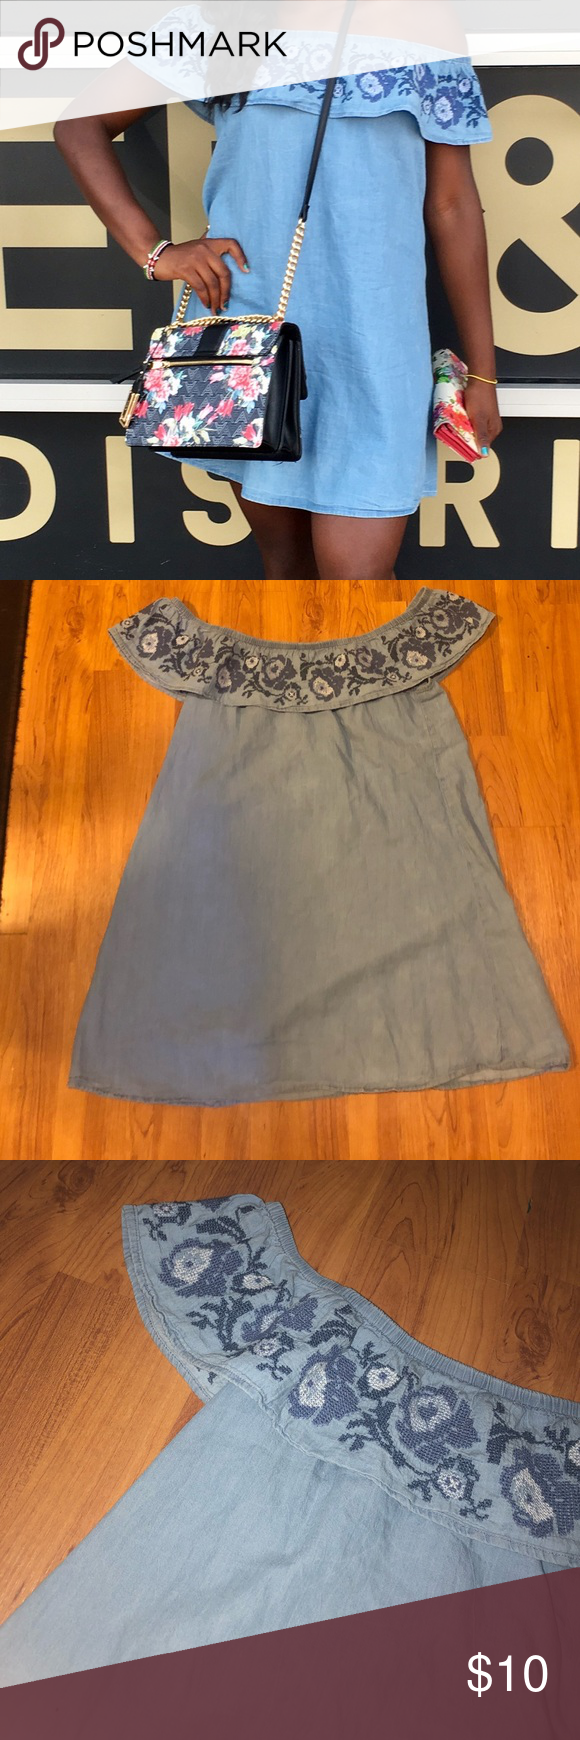 1f4b3abe9 Arizona jean Co. off shoulder dress This is one of my favorite dresses,  it's just too small for me now. Feel free to make an offer!